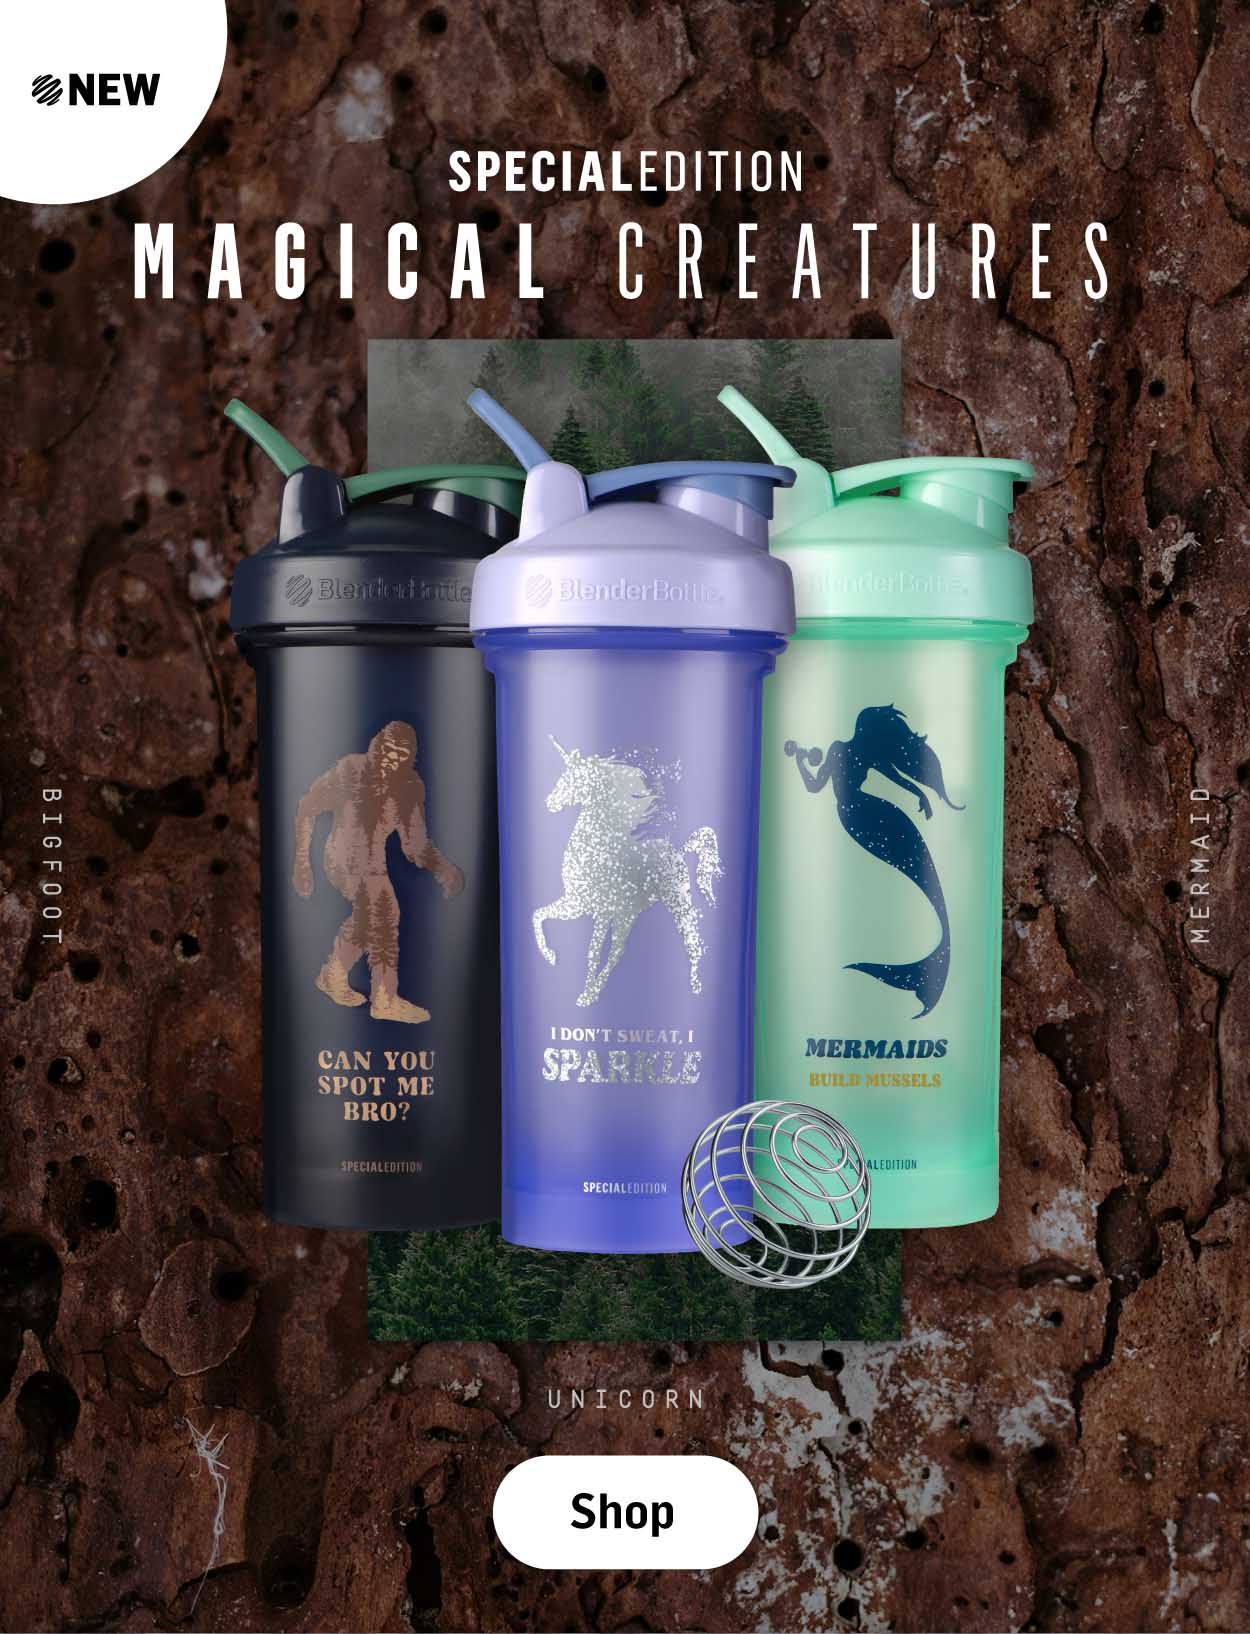 New Special Edition Magical Creatures Available Now